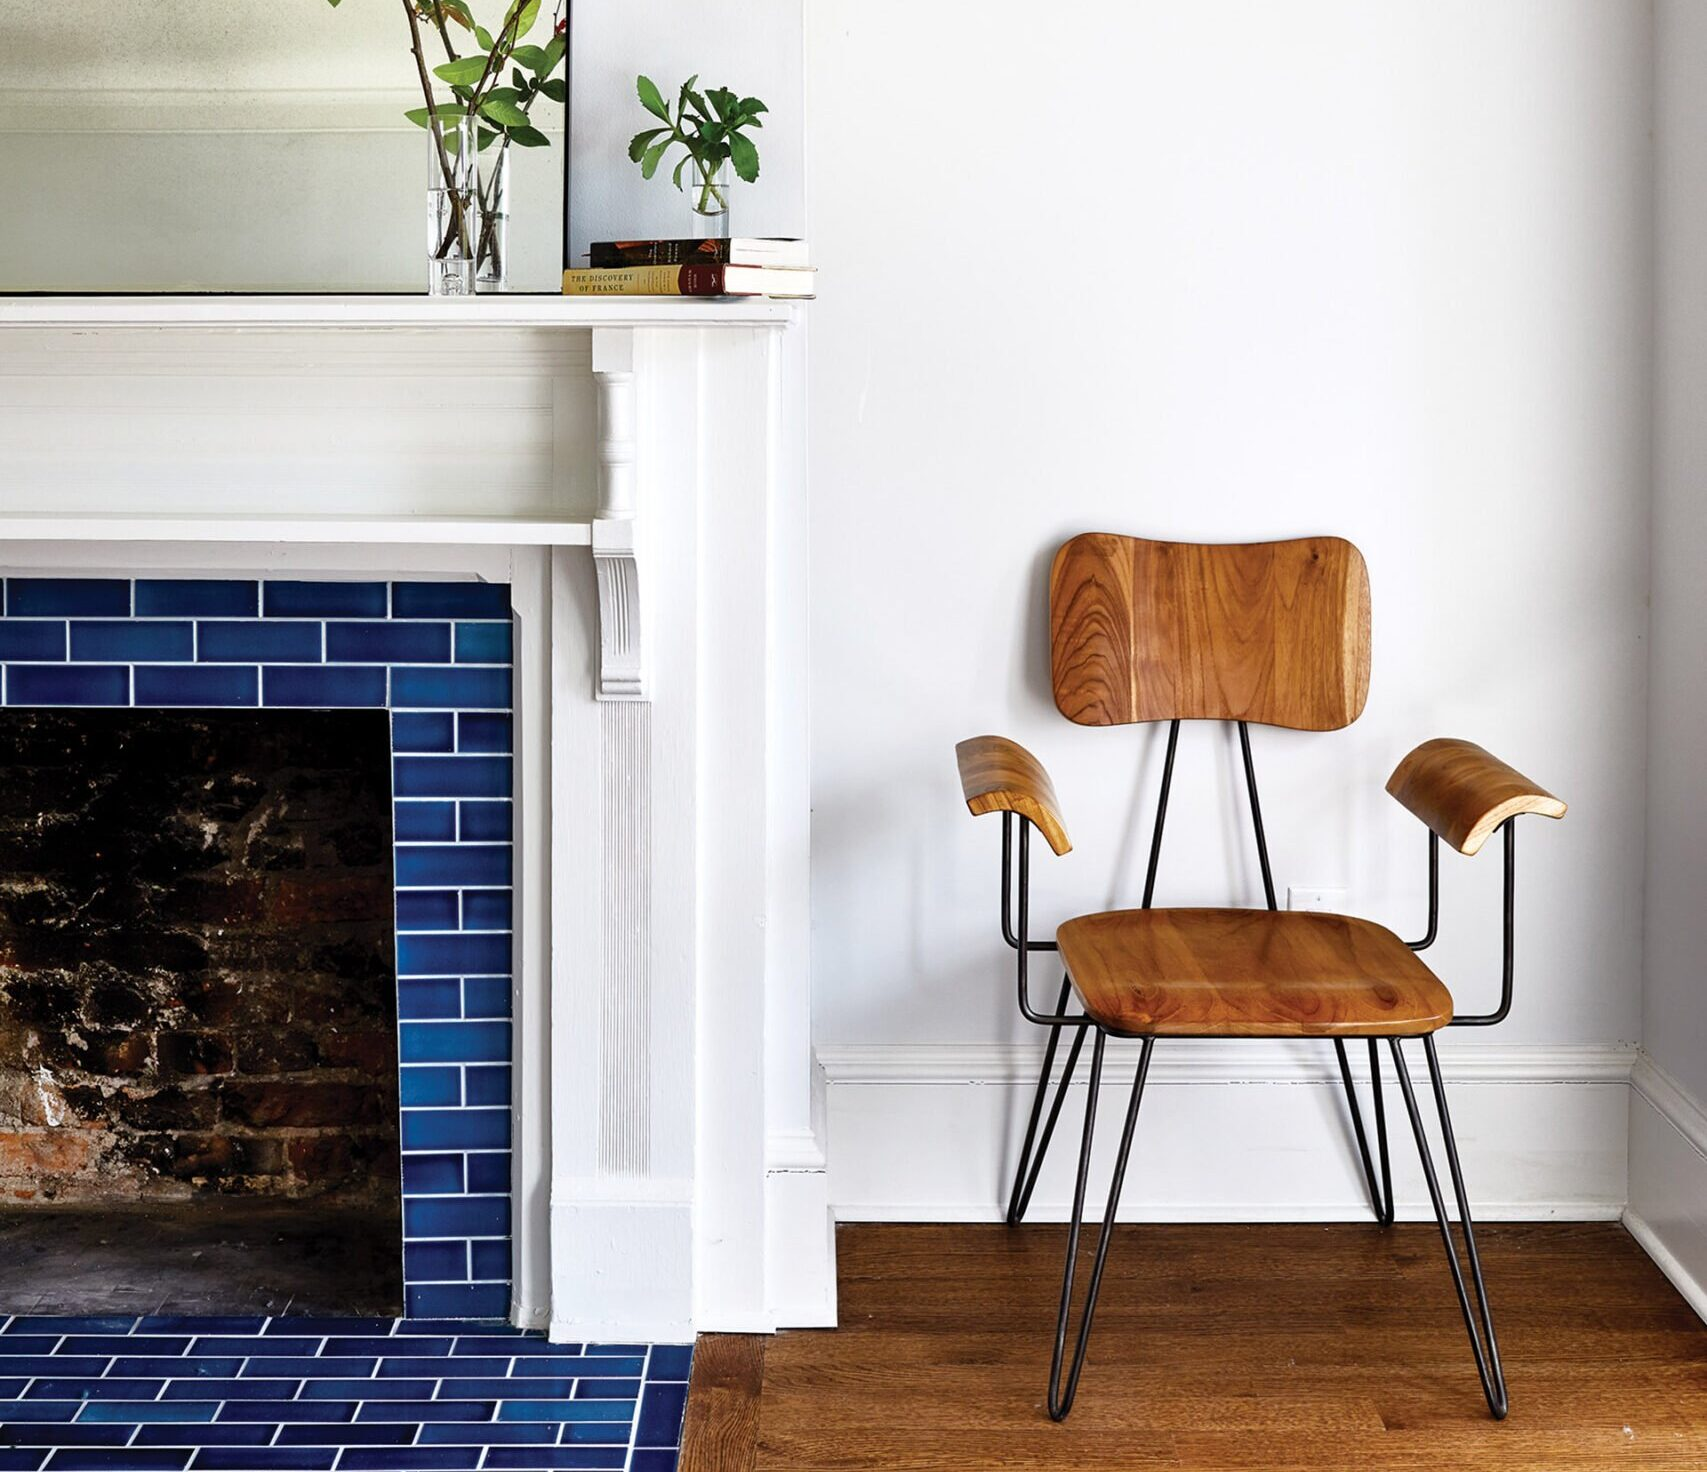 Tile fireplace surround adds a dash of color.